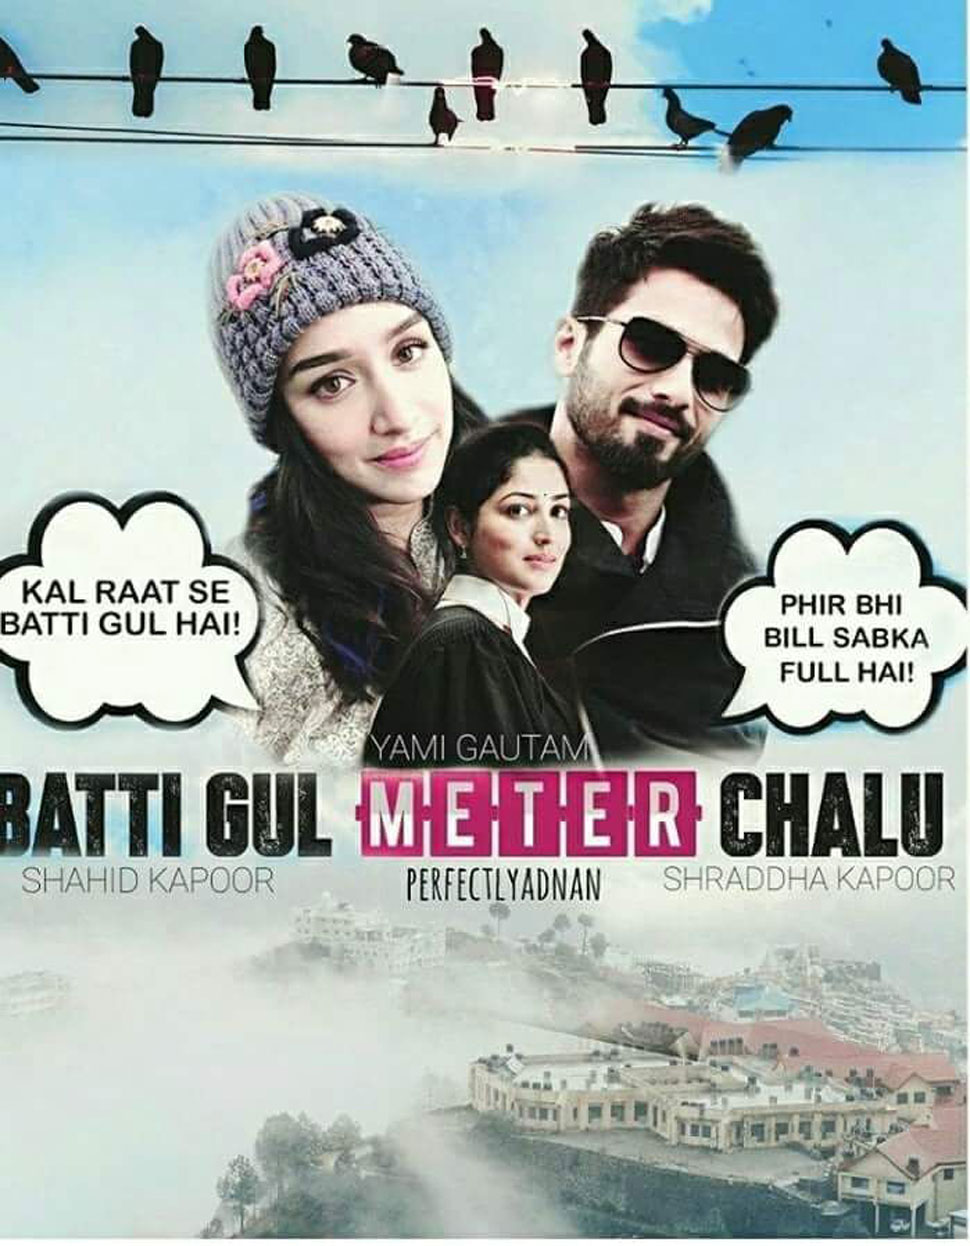 Image result for latest images of batti gul meter chaalu